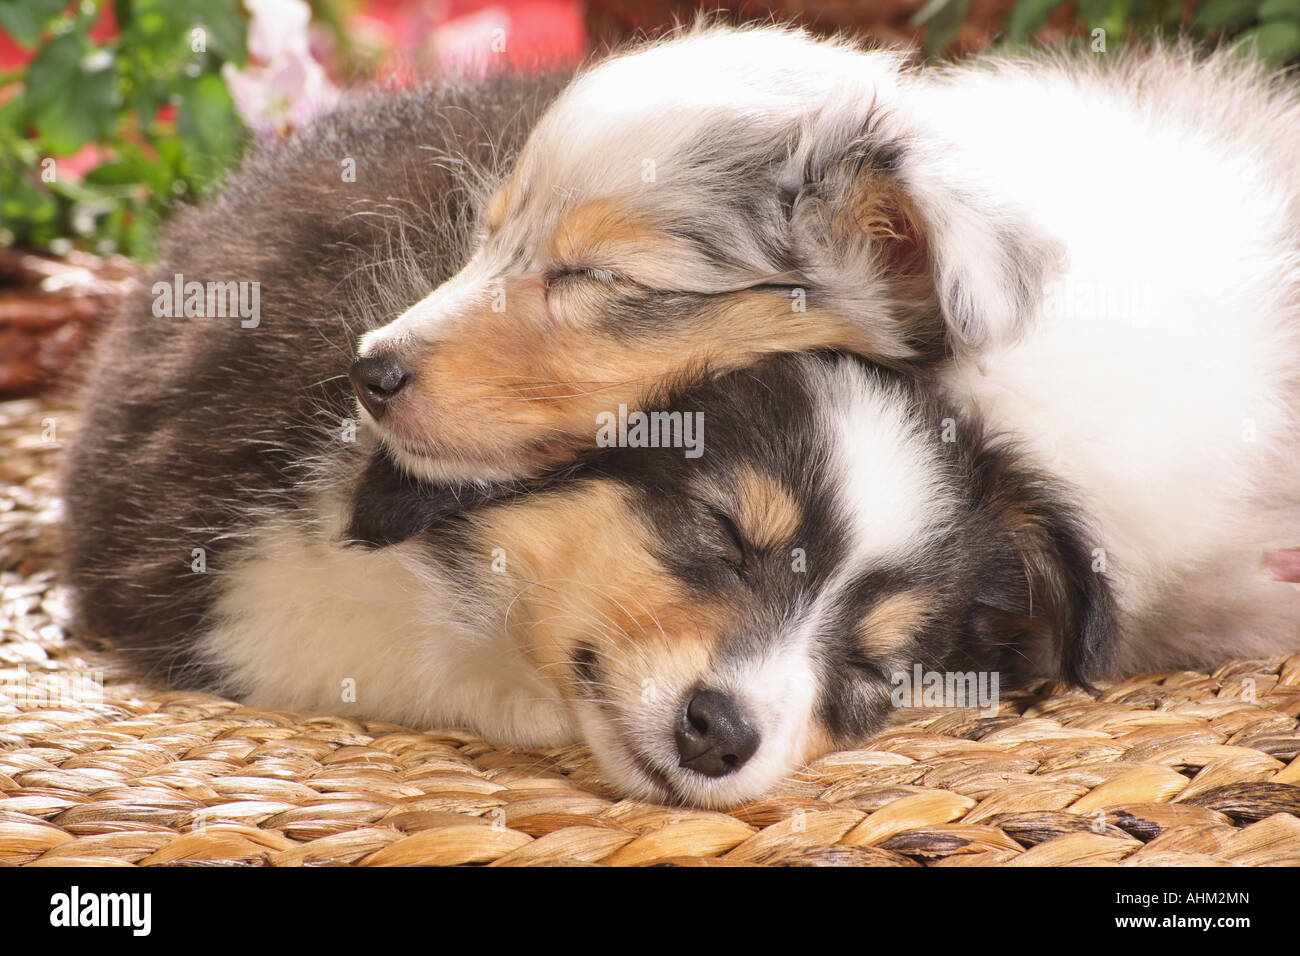 Shetland Sheepdog Sheltie Two Puppies Sleeping Stock Photo